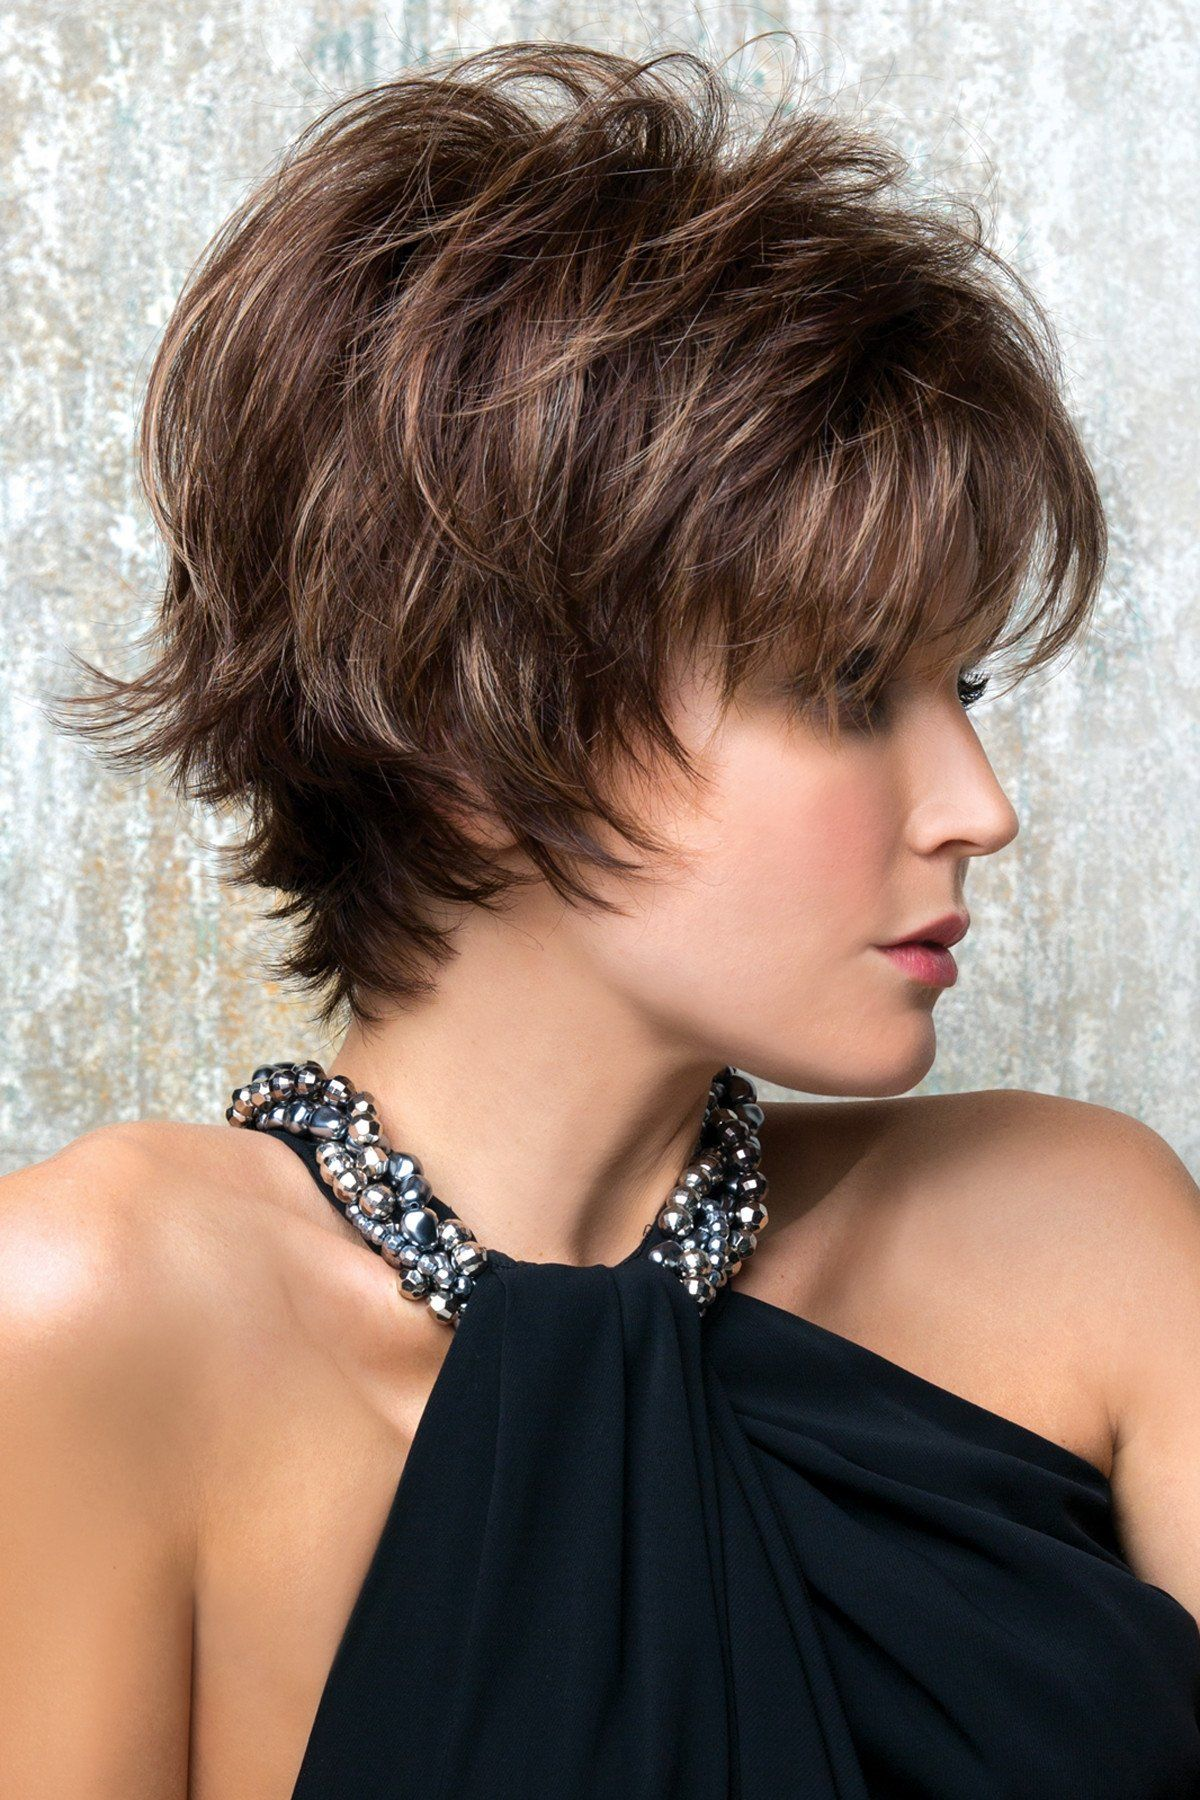 Name Brand Wigs Offers Quality Wigs Hair Pieces Hair Extensions